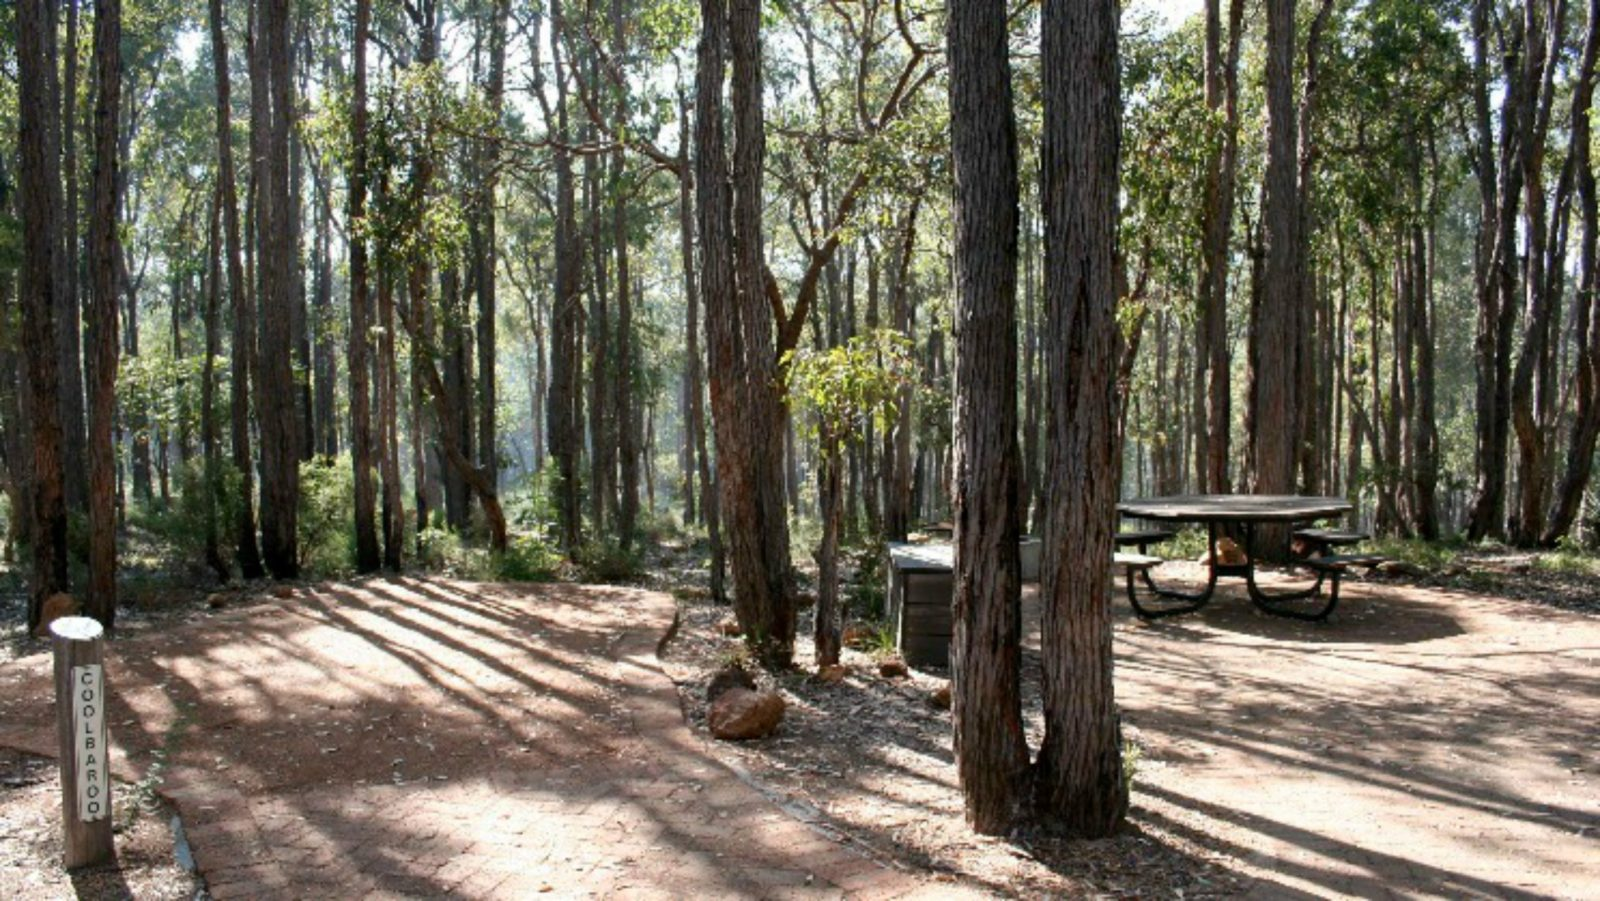 Perth Hills Centre Campground at Beelu National Park, Perth, Western Australia